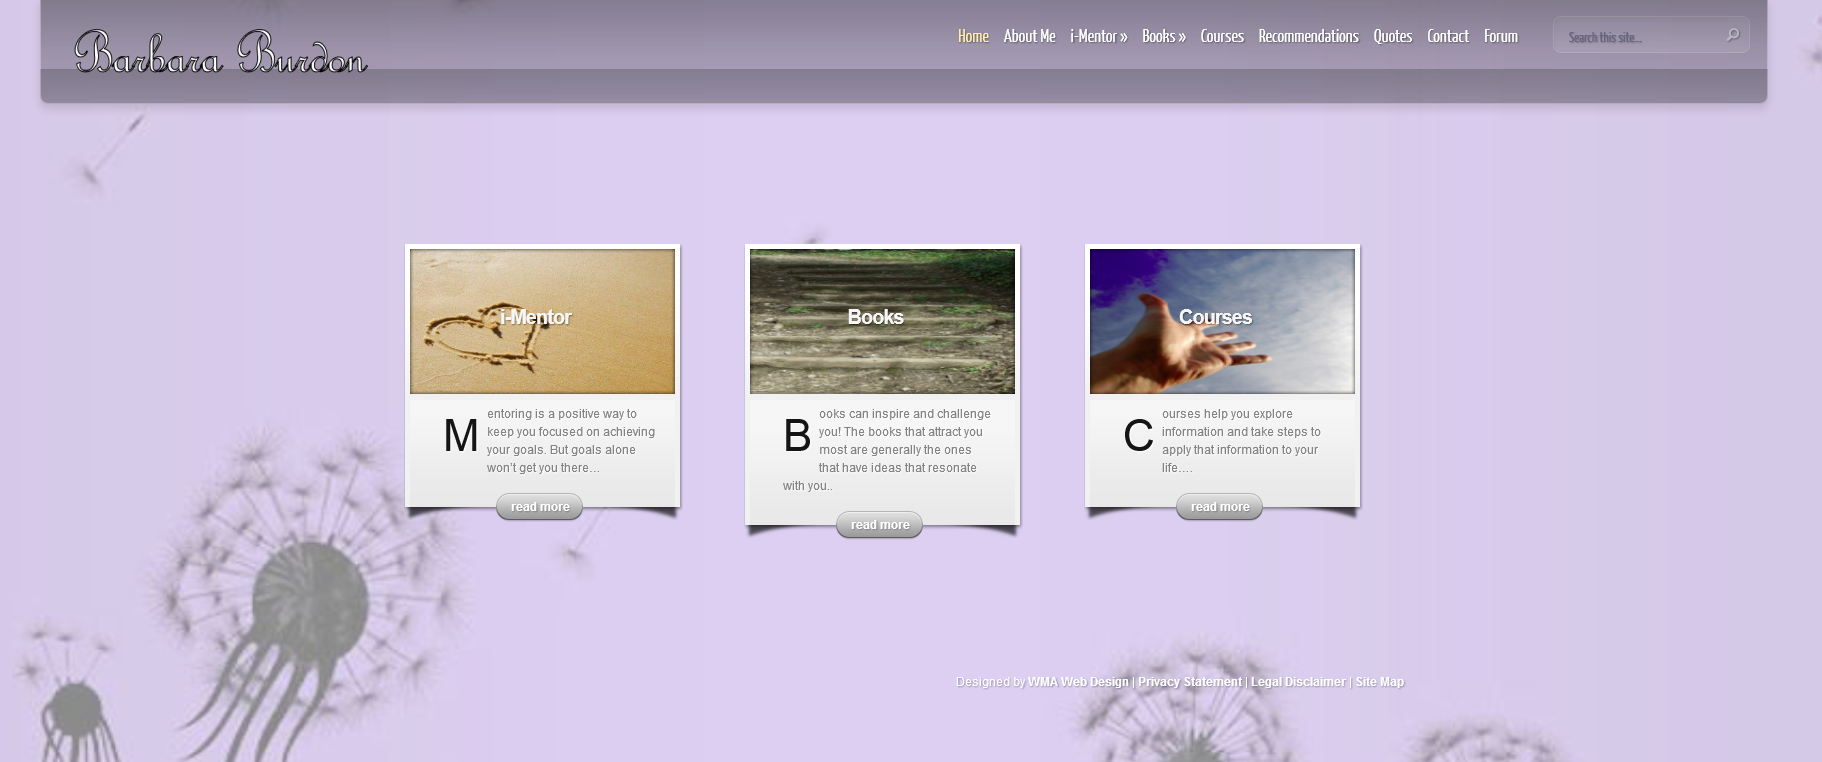 Barbara Burdon Intuitive mentoring website design